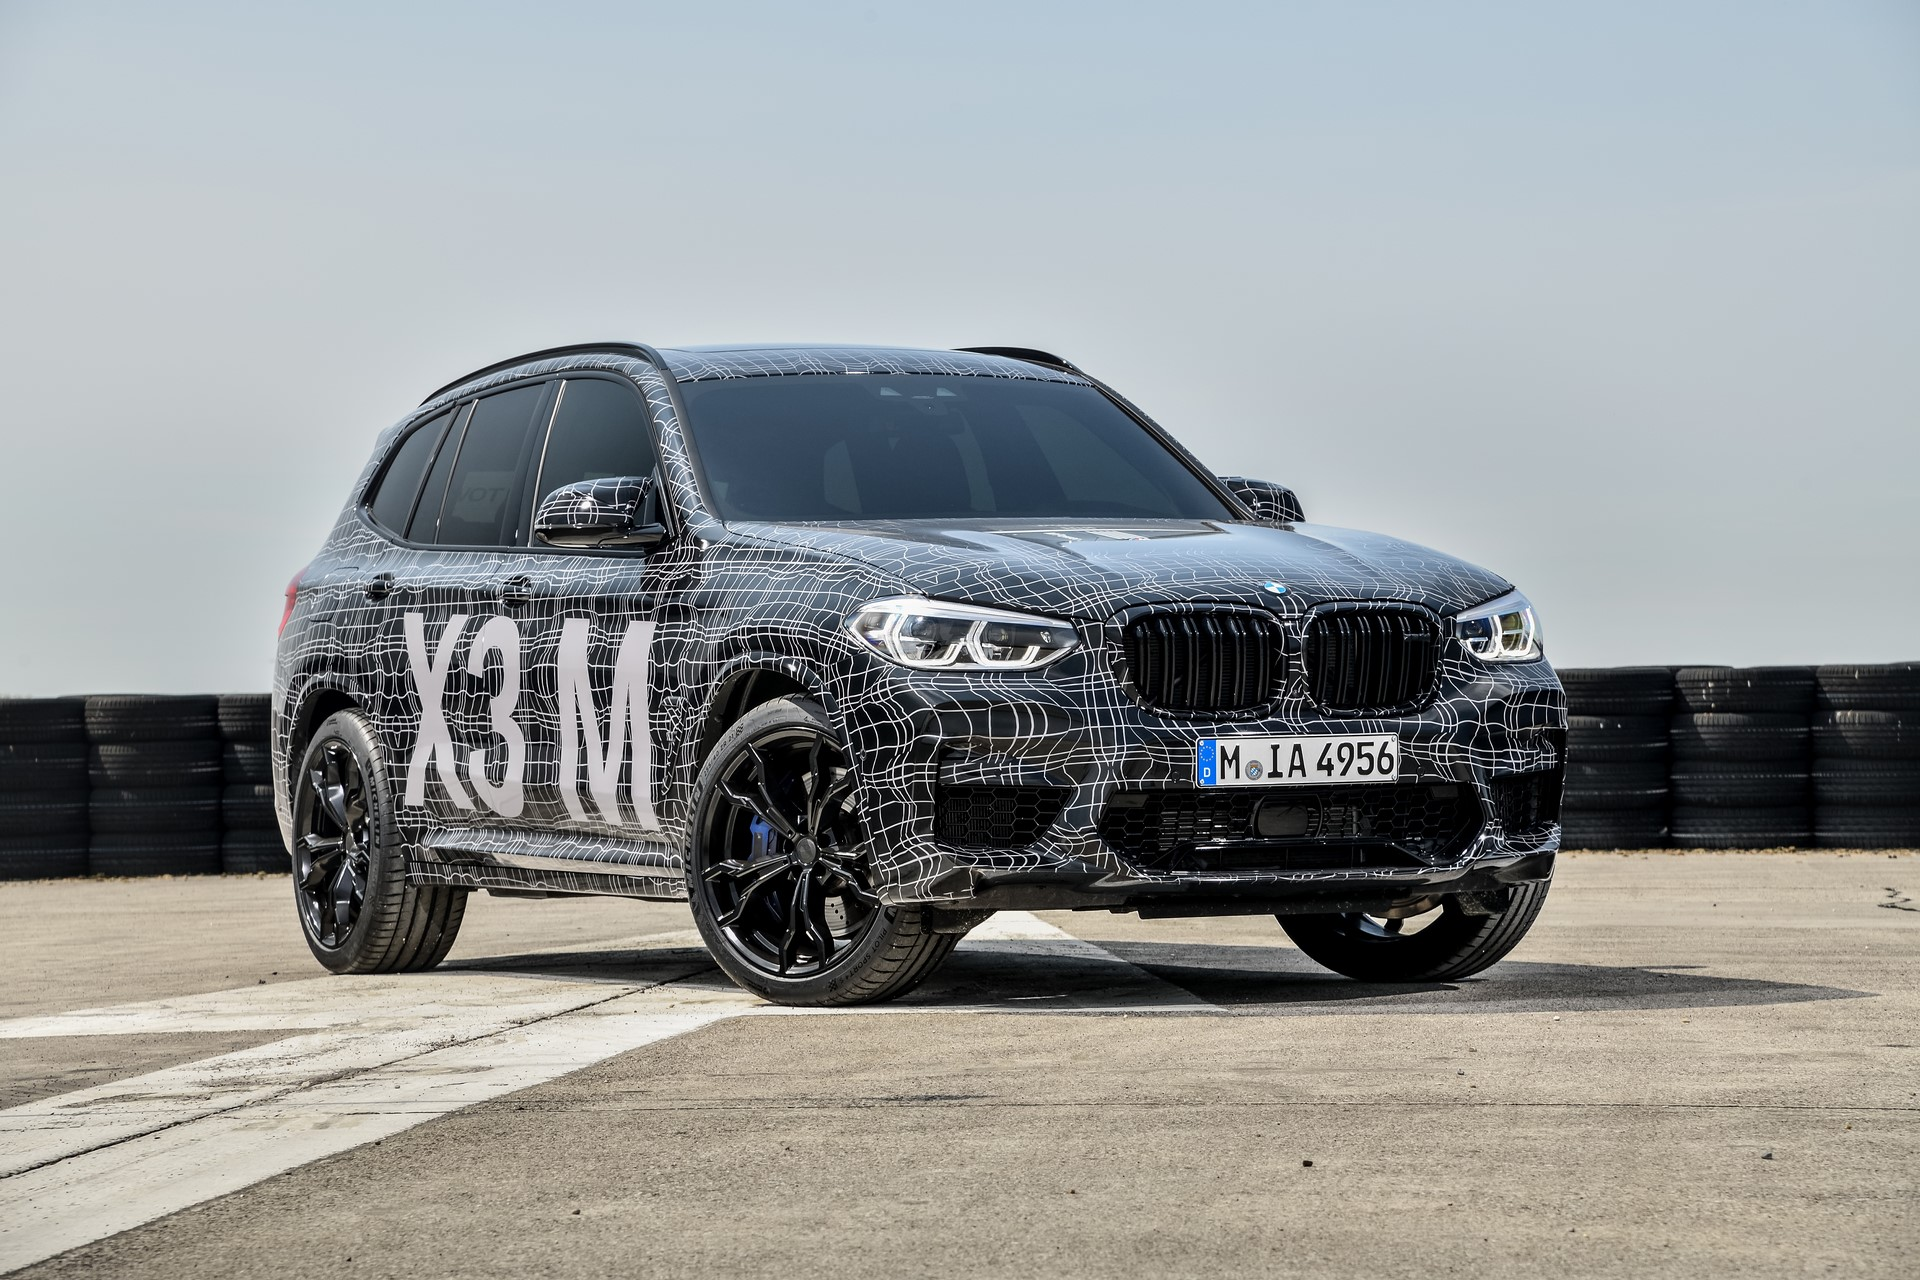 BMW X3 M and BMW X4 M at Nurburgring (8)